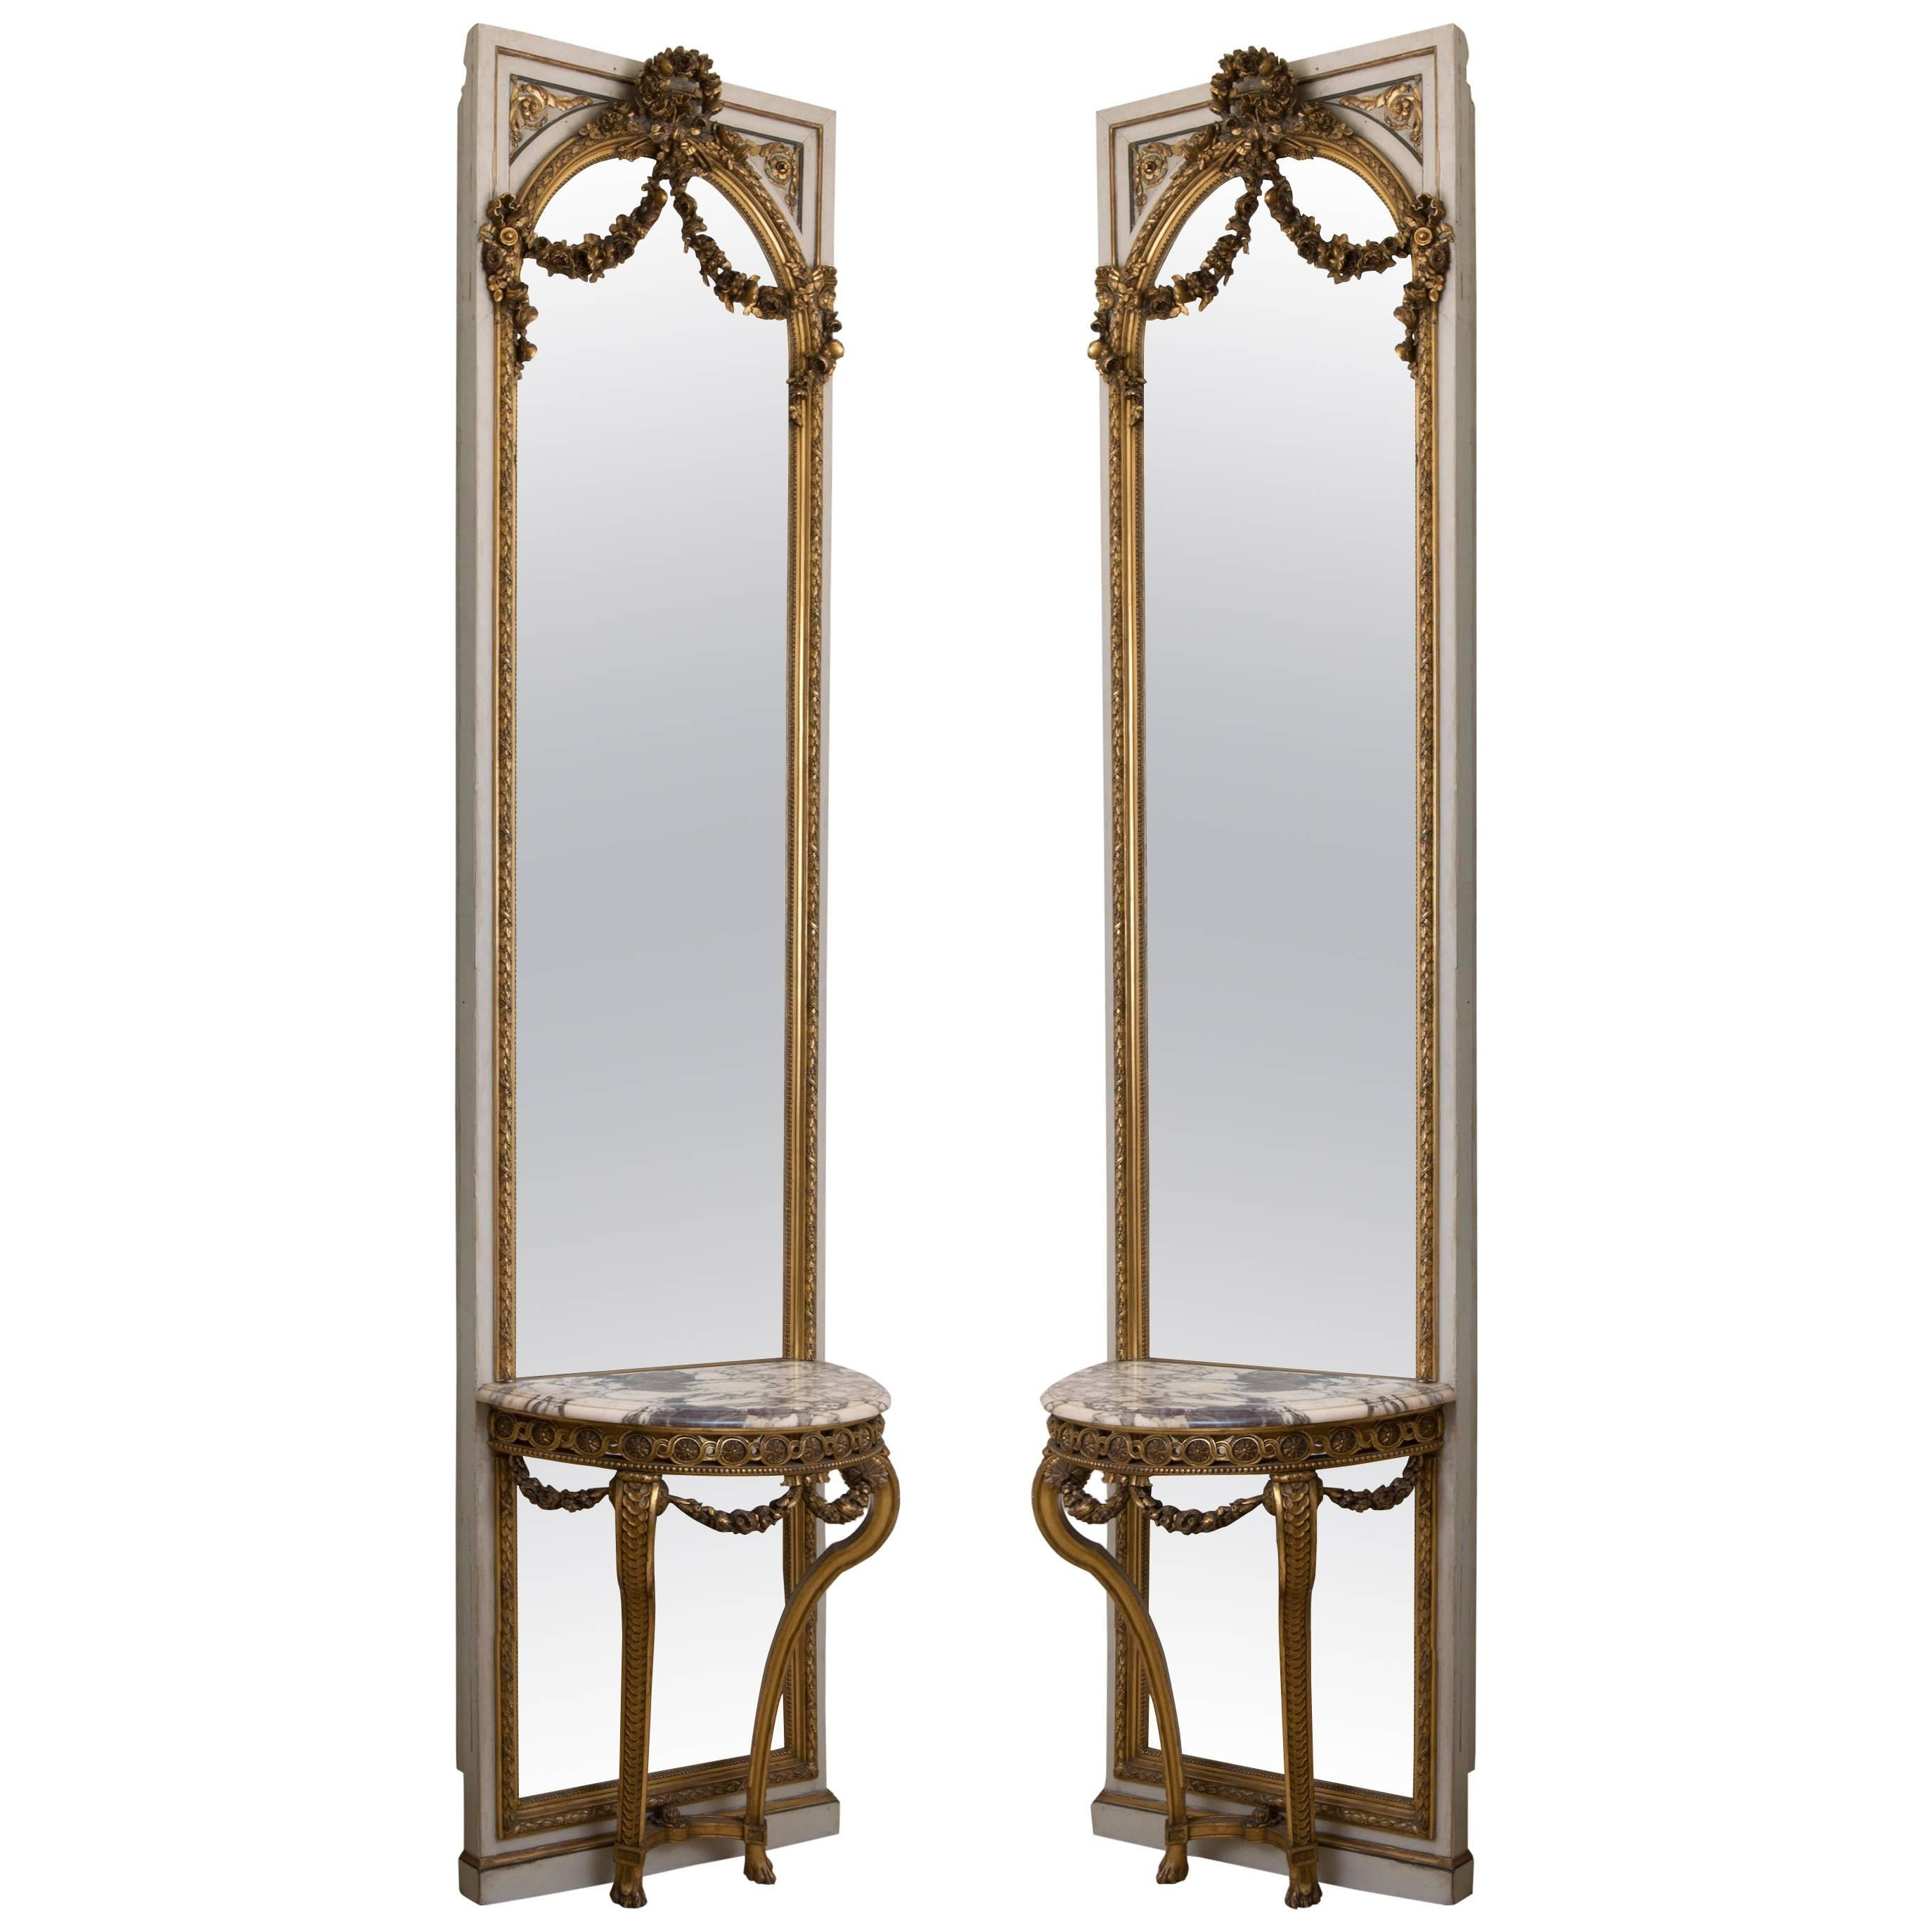 Pair of French Parcel-Gilt and Painted Consoles and Mirrors, 19th Century